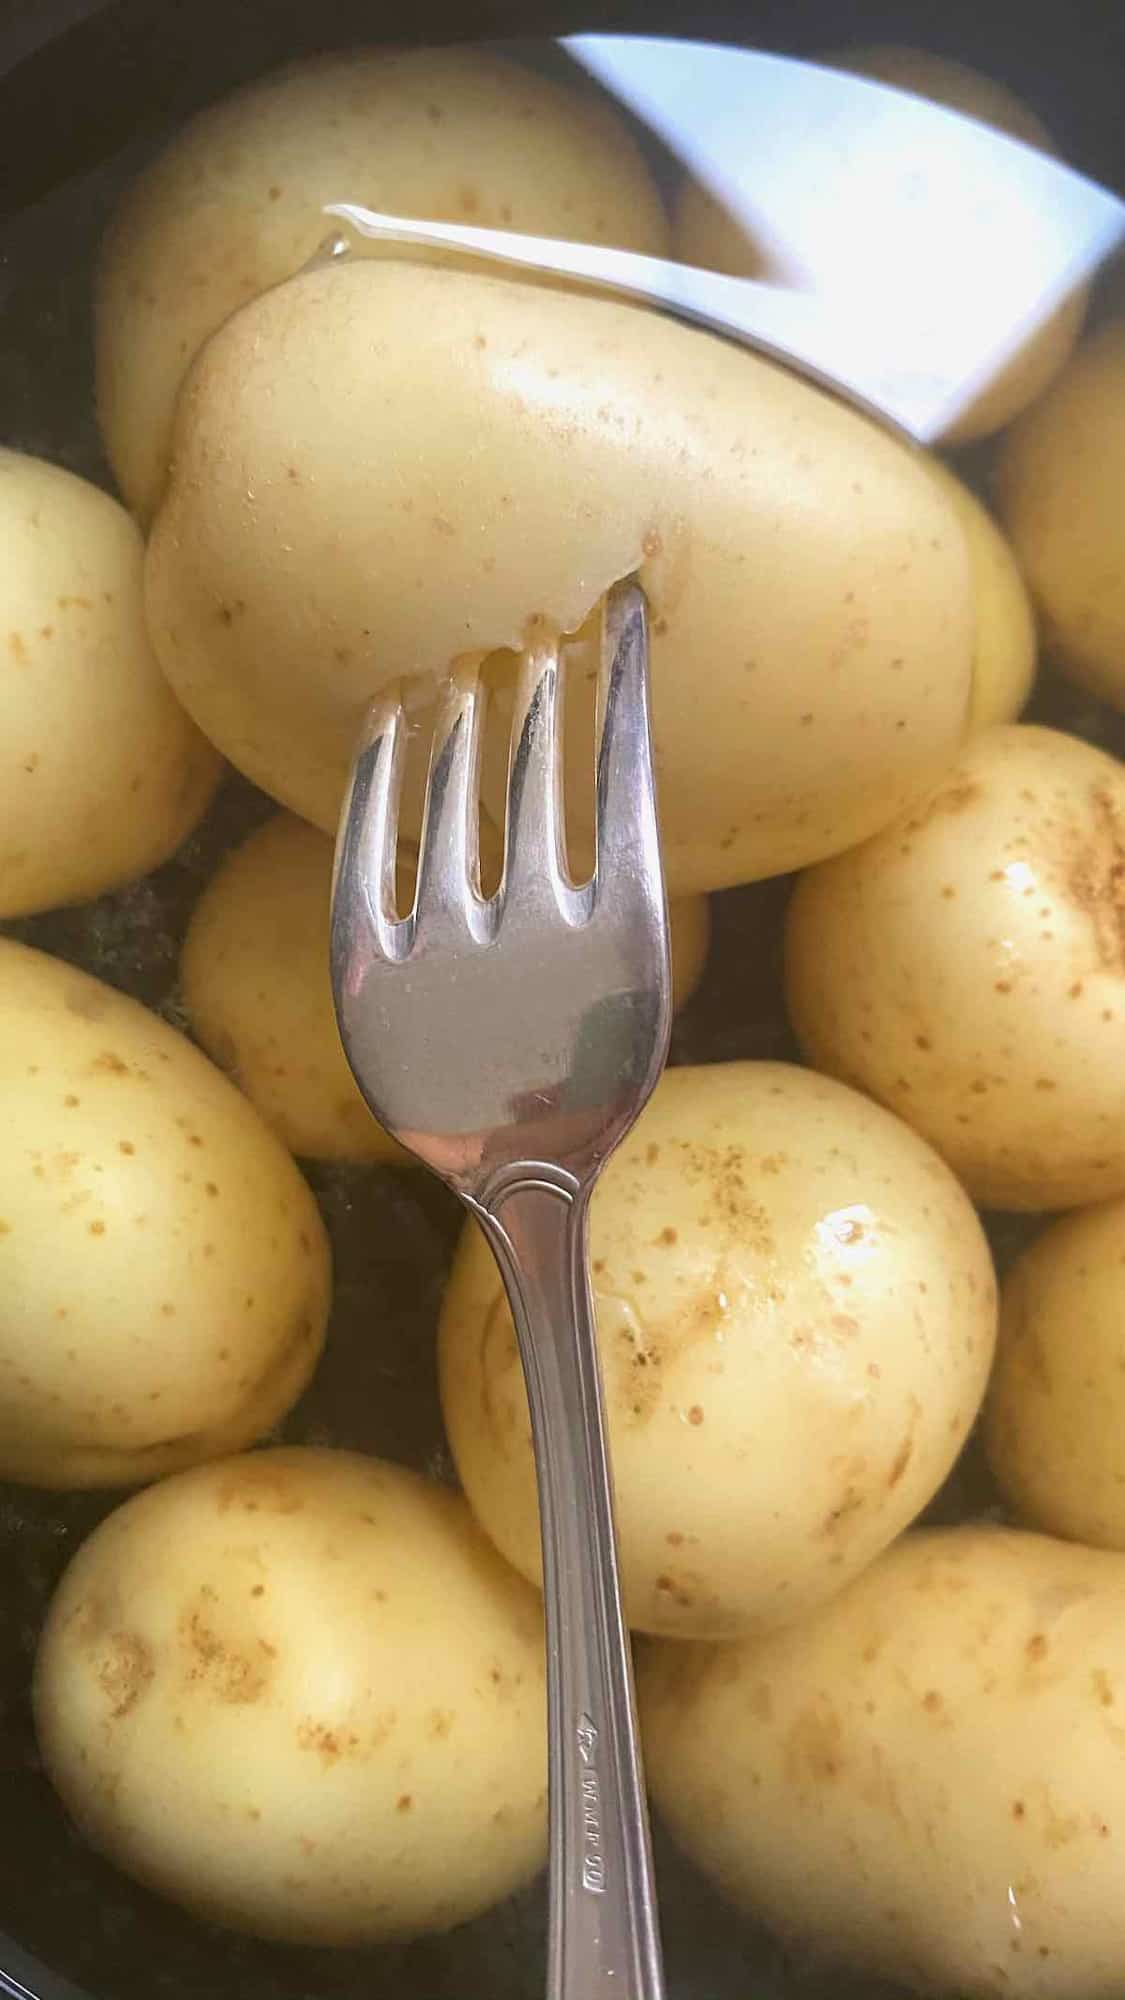 Fork poking a boiled potato in a pot